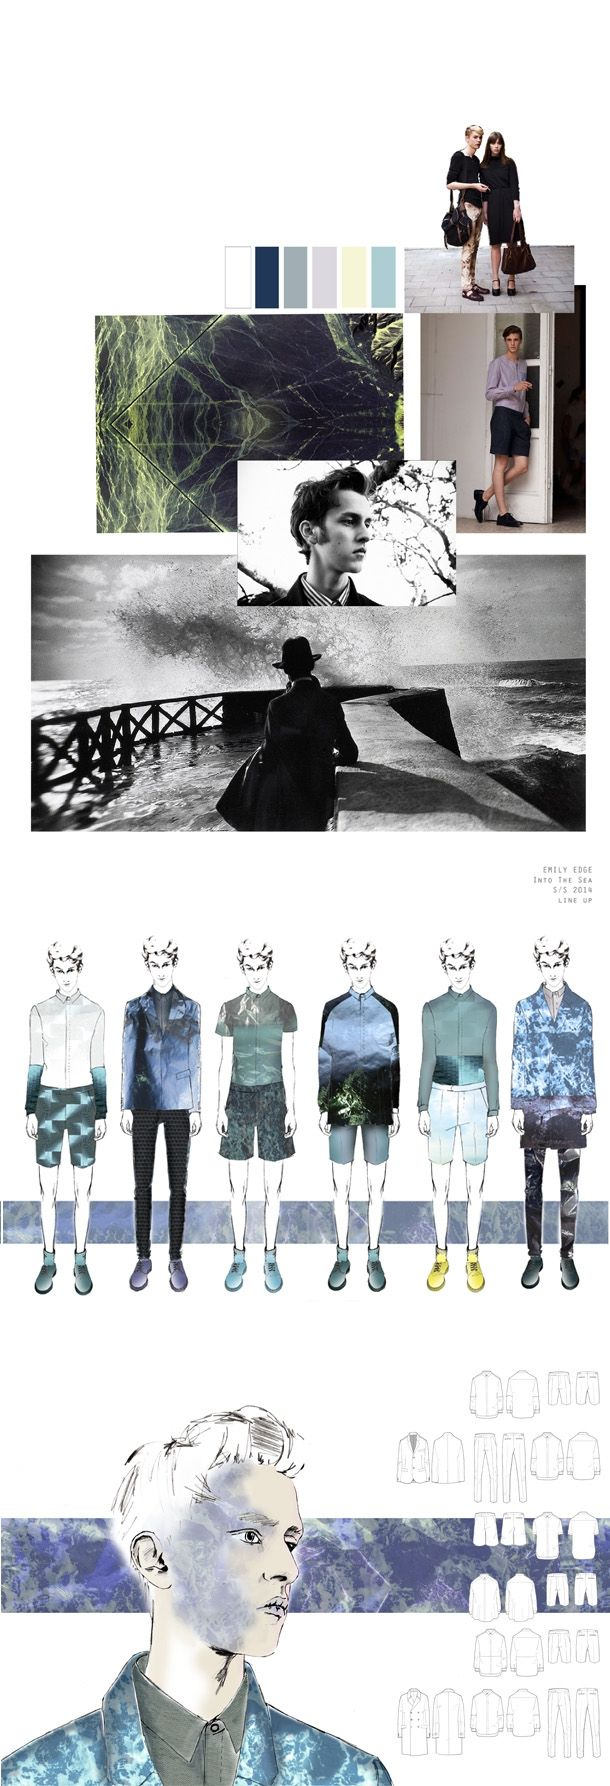 #Fashion #Portfolio layout - fashion design development with sea-inspired prints - fashion mood board; fashion #sketchbook